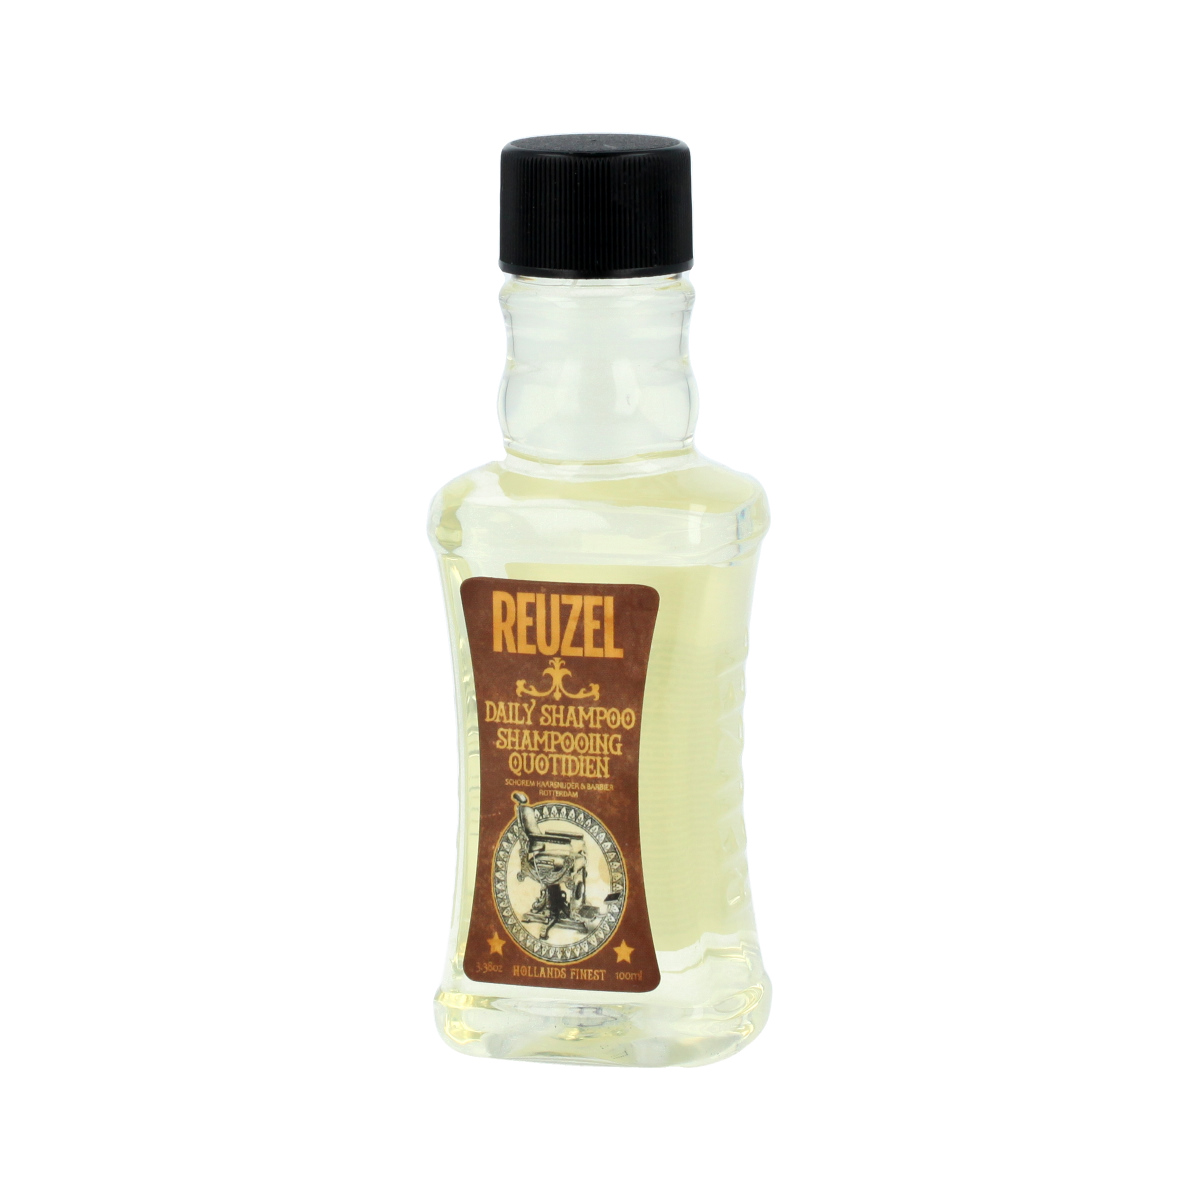 REUZEL Daily Shampoo 100 ml 14428